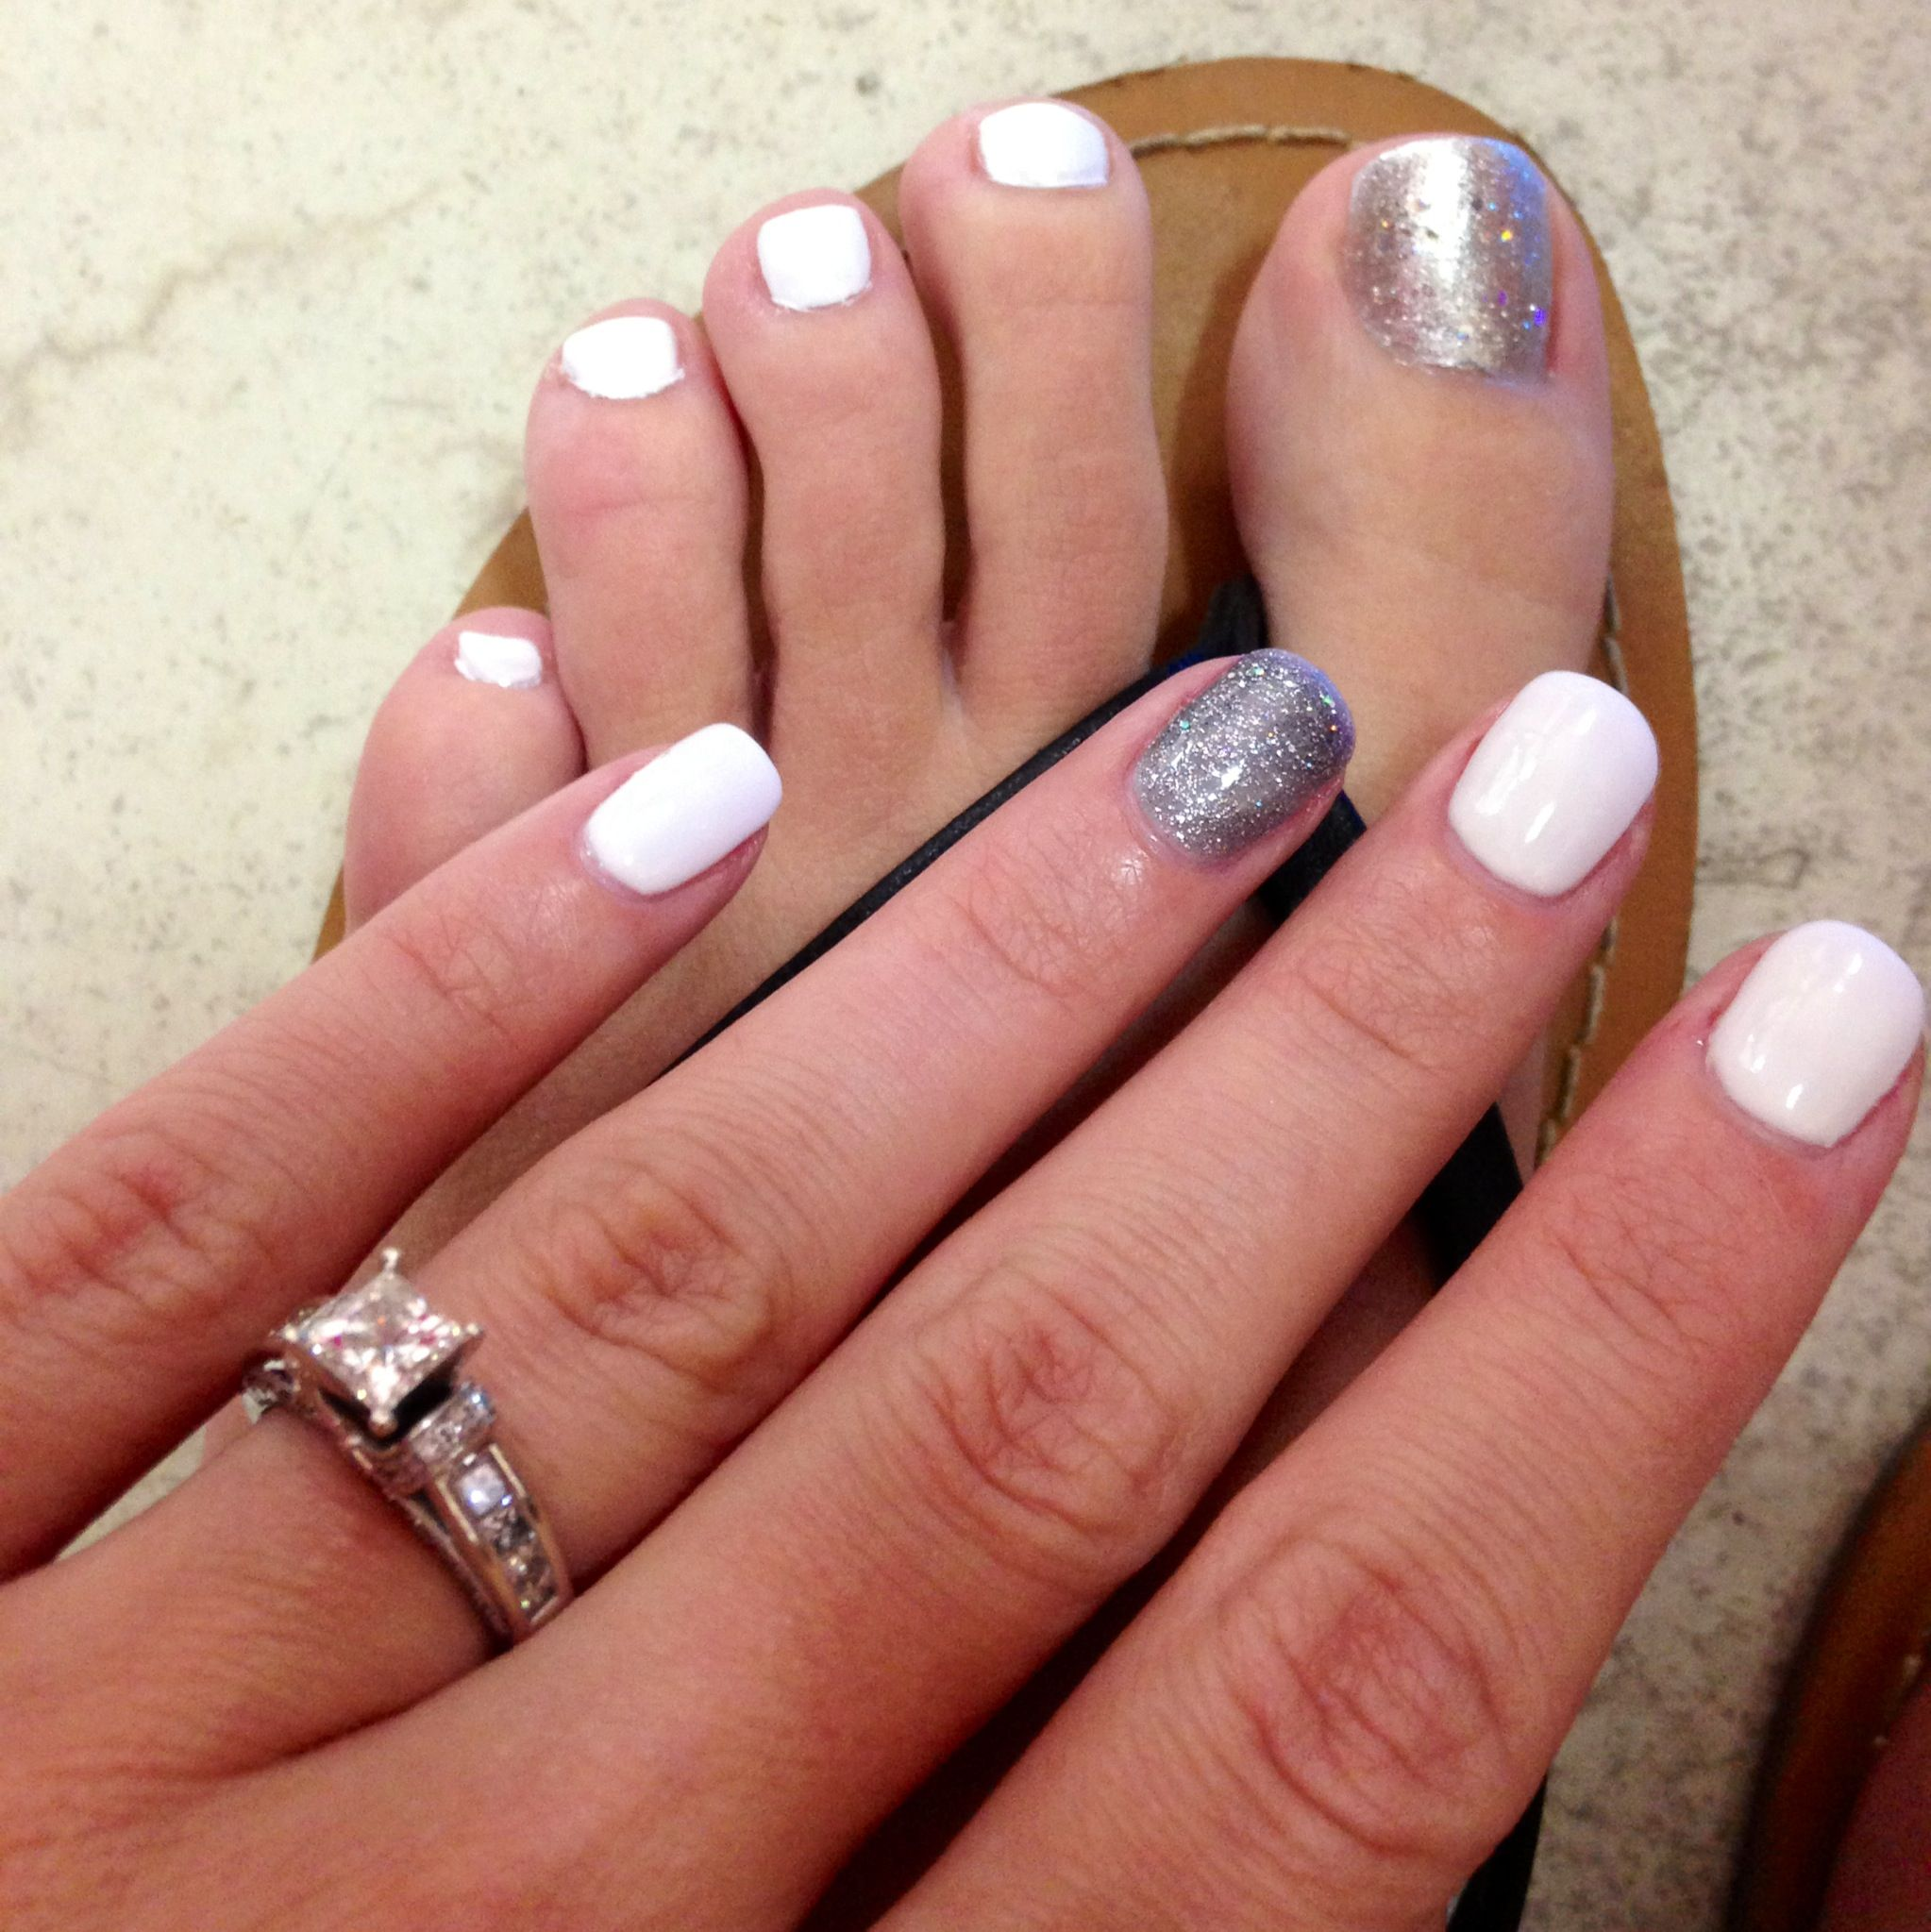 My Bridal Shower Nails And Toes White With Silver Glitter Accent Nail